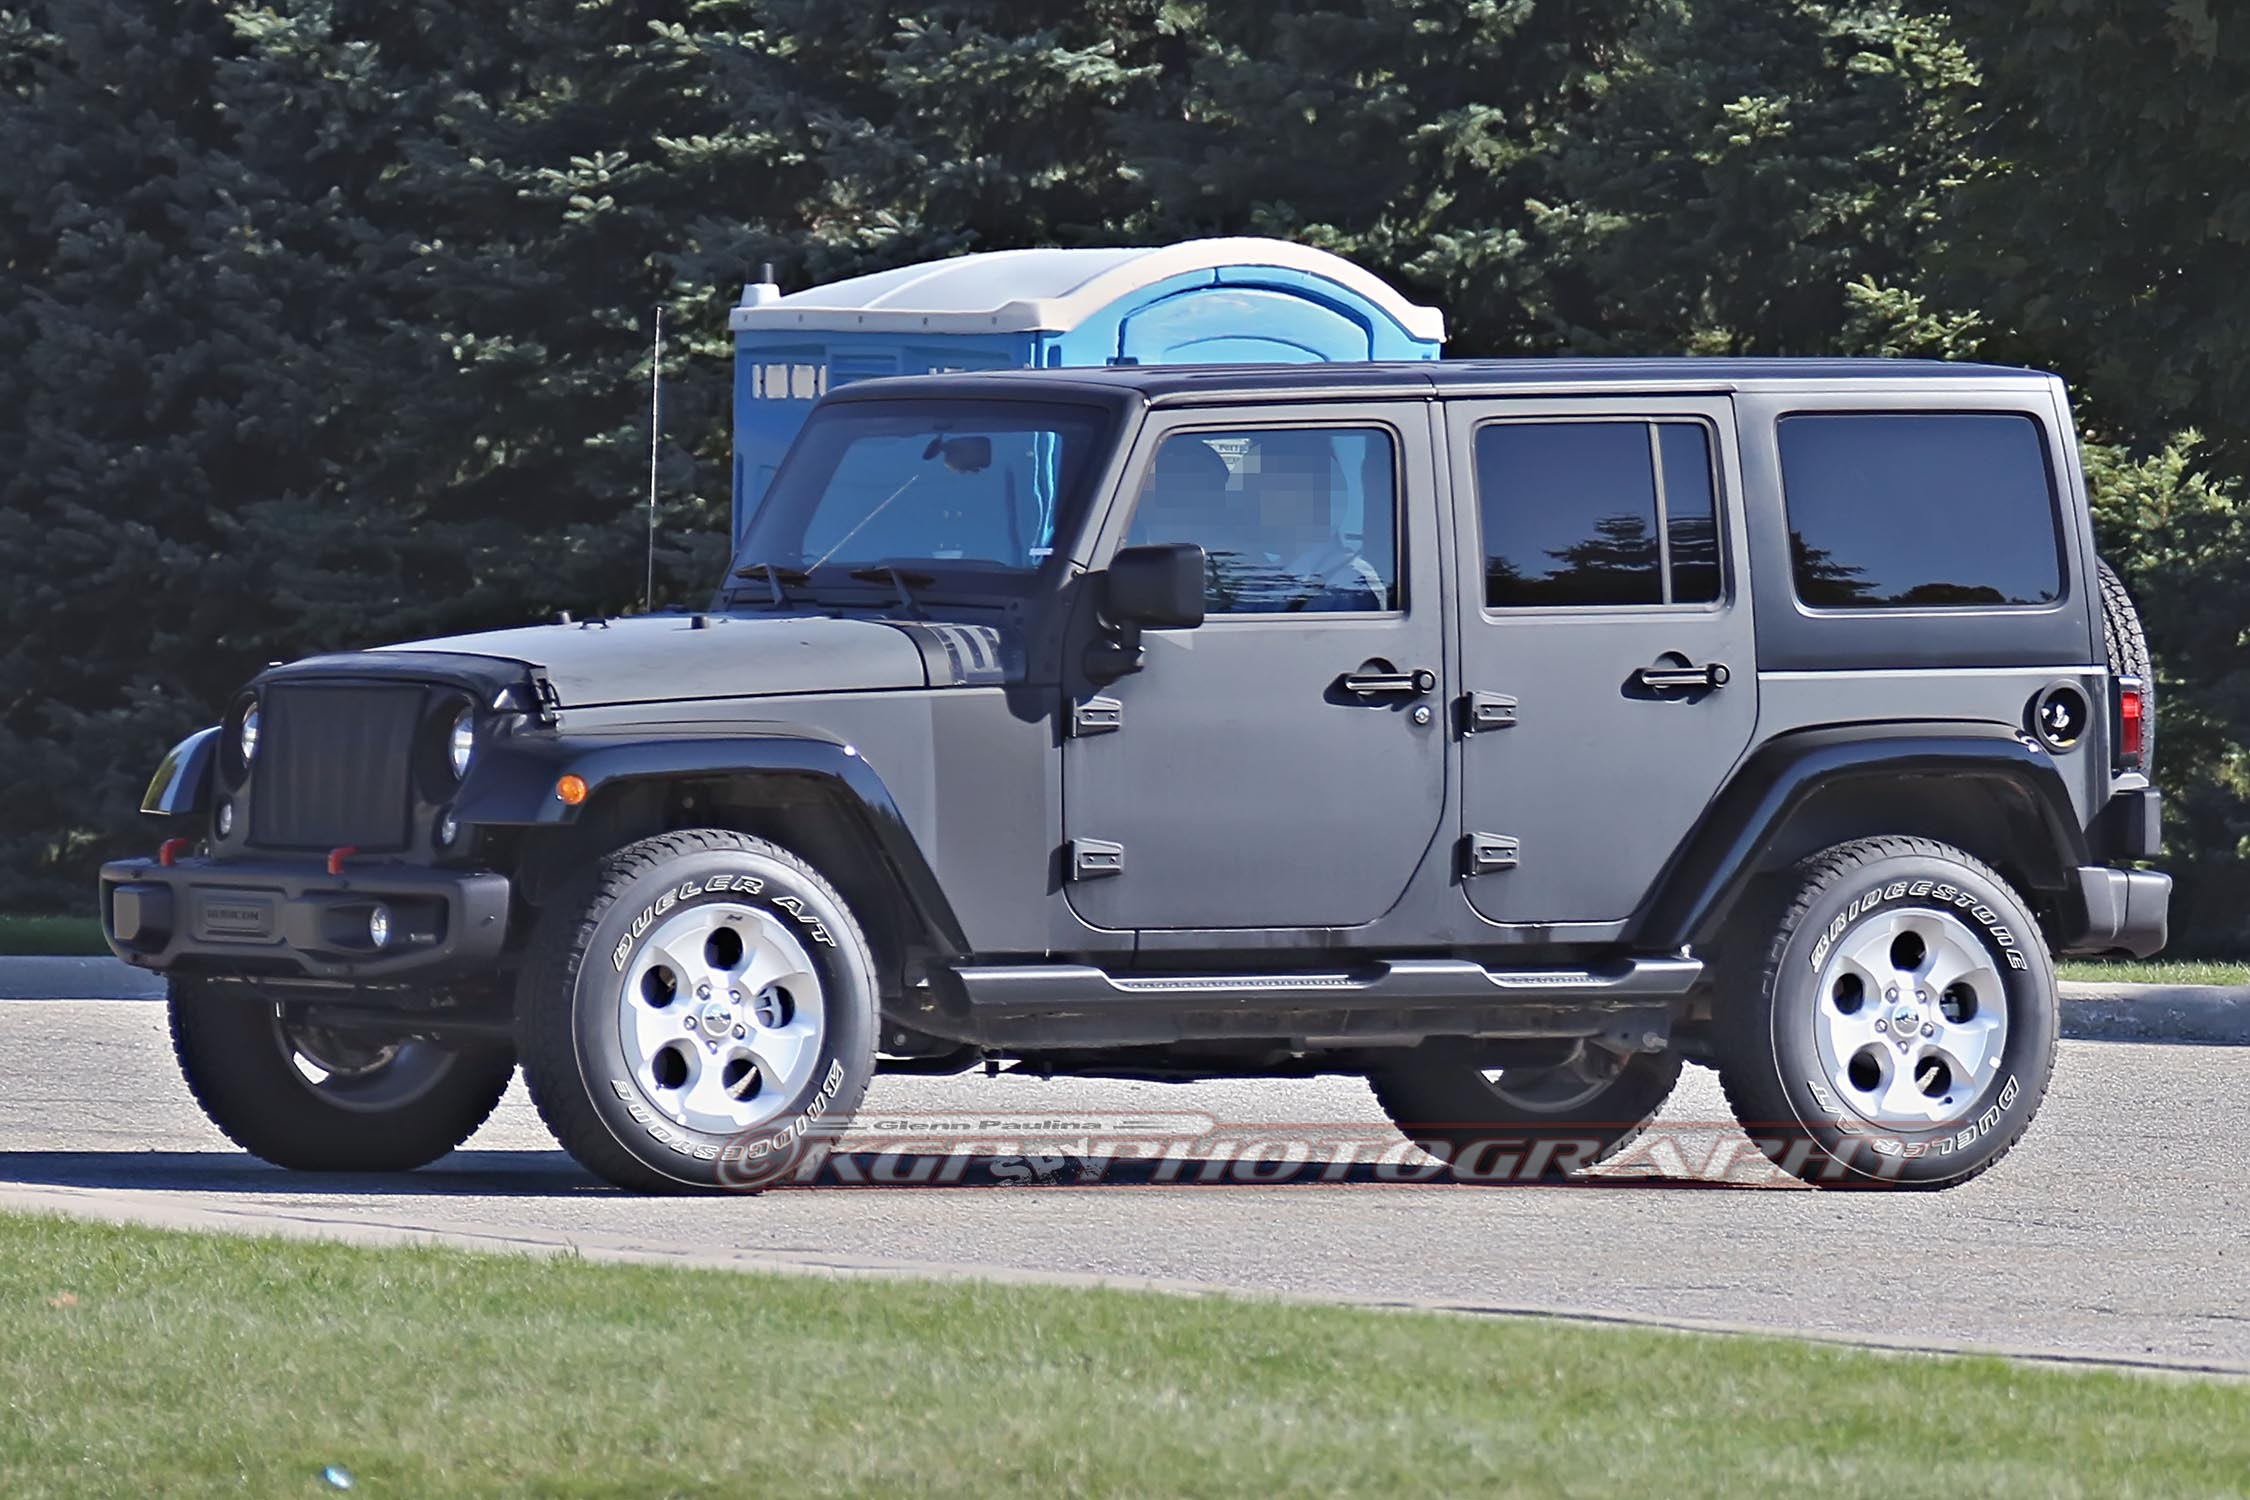 jeep curb wrangler and unlimited specs weight of review prices price rock luxury jl door for sliders engineering four ace